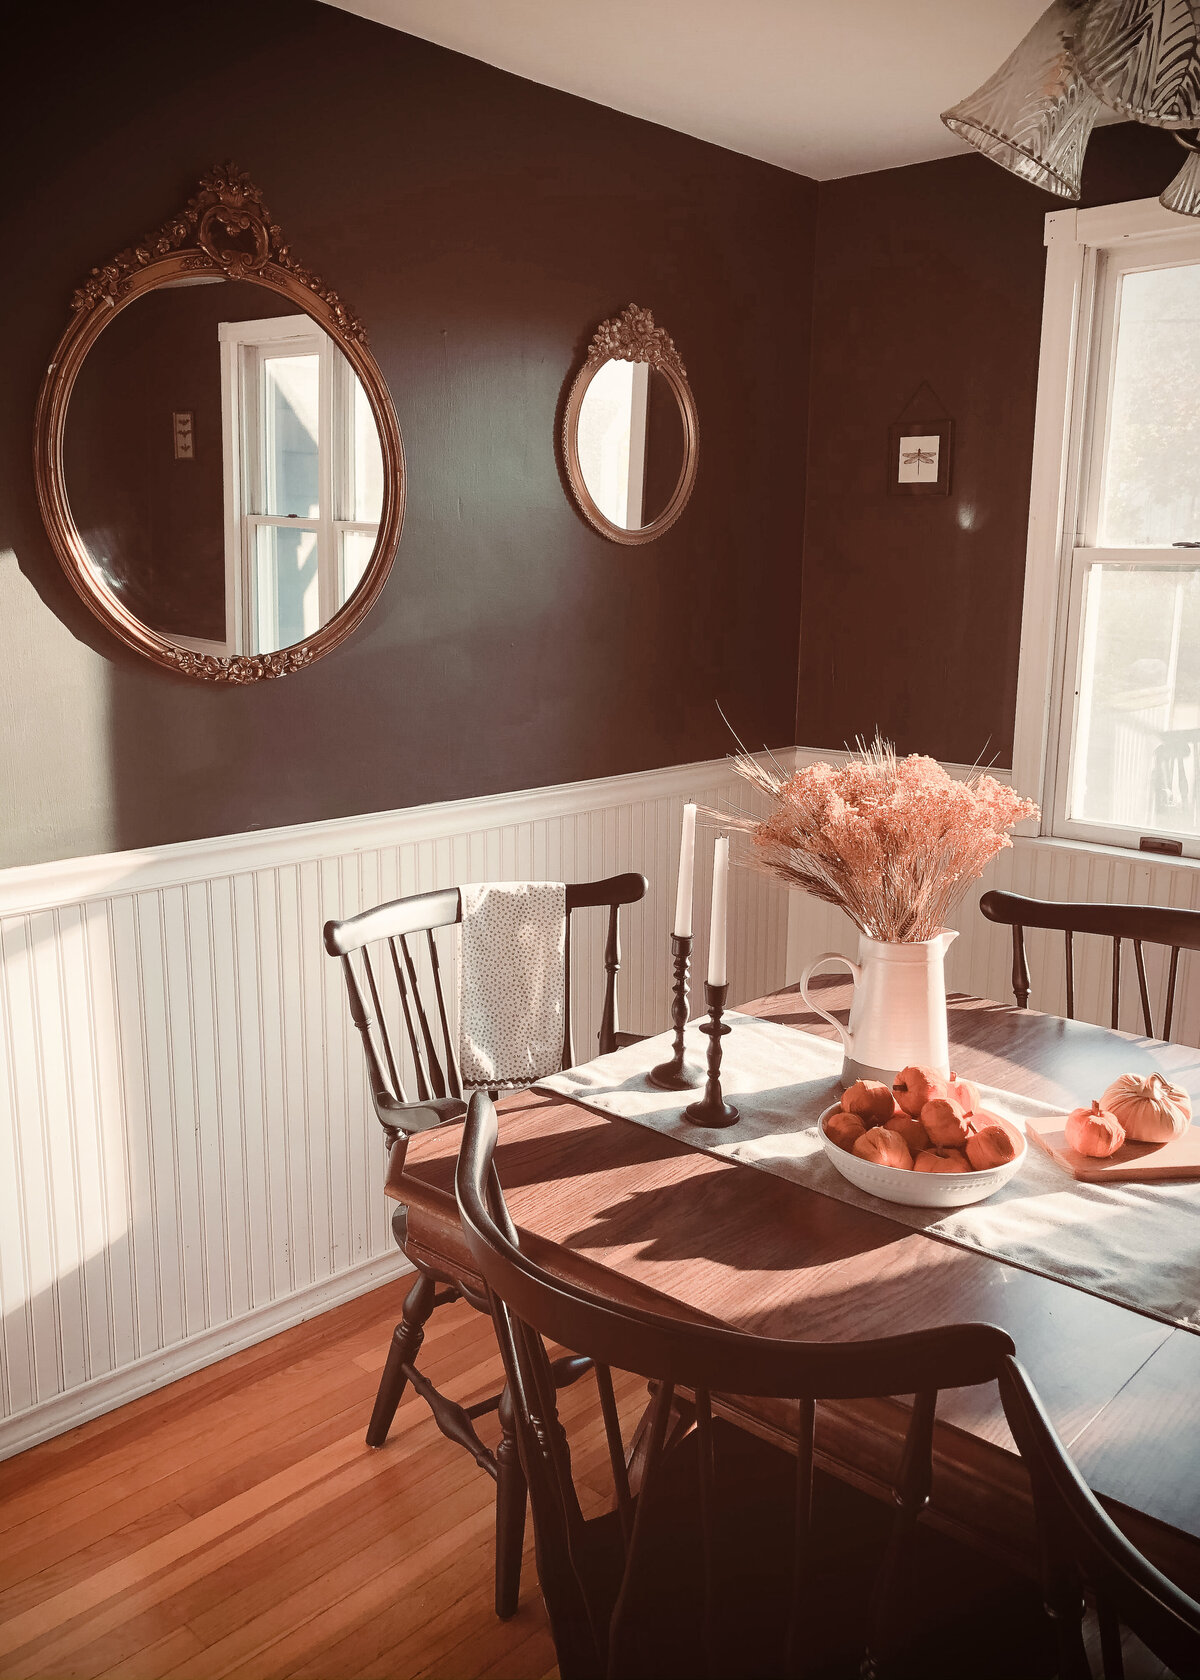 A dining room is styled with two-tone walls in white and black with a dark wood table displaying a ceramic white jug.